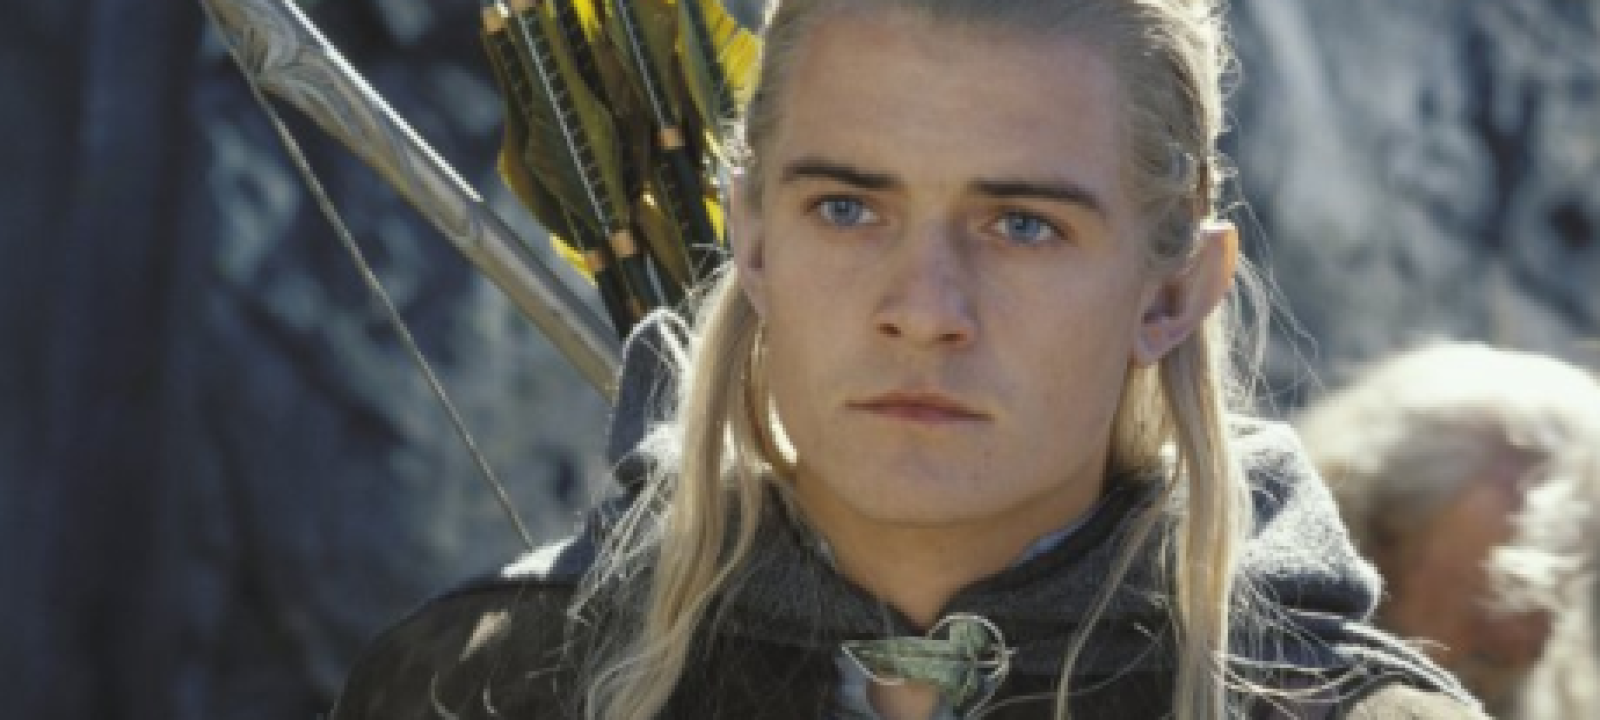 Watch Orlando Bloom Sings They Re Taking The Hobbits To Isengard On The Set Of The Hobbit Anglophenia Bbc America